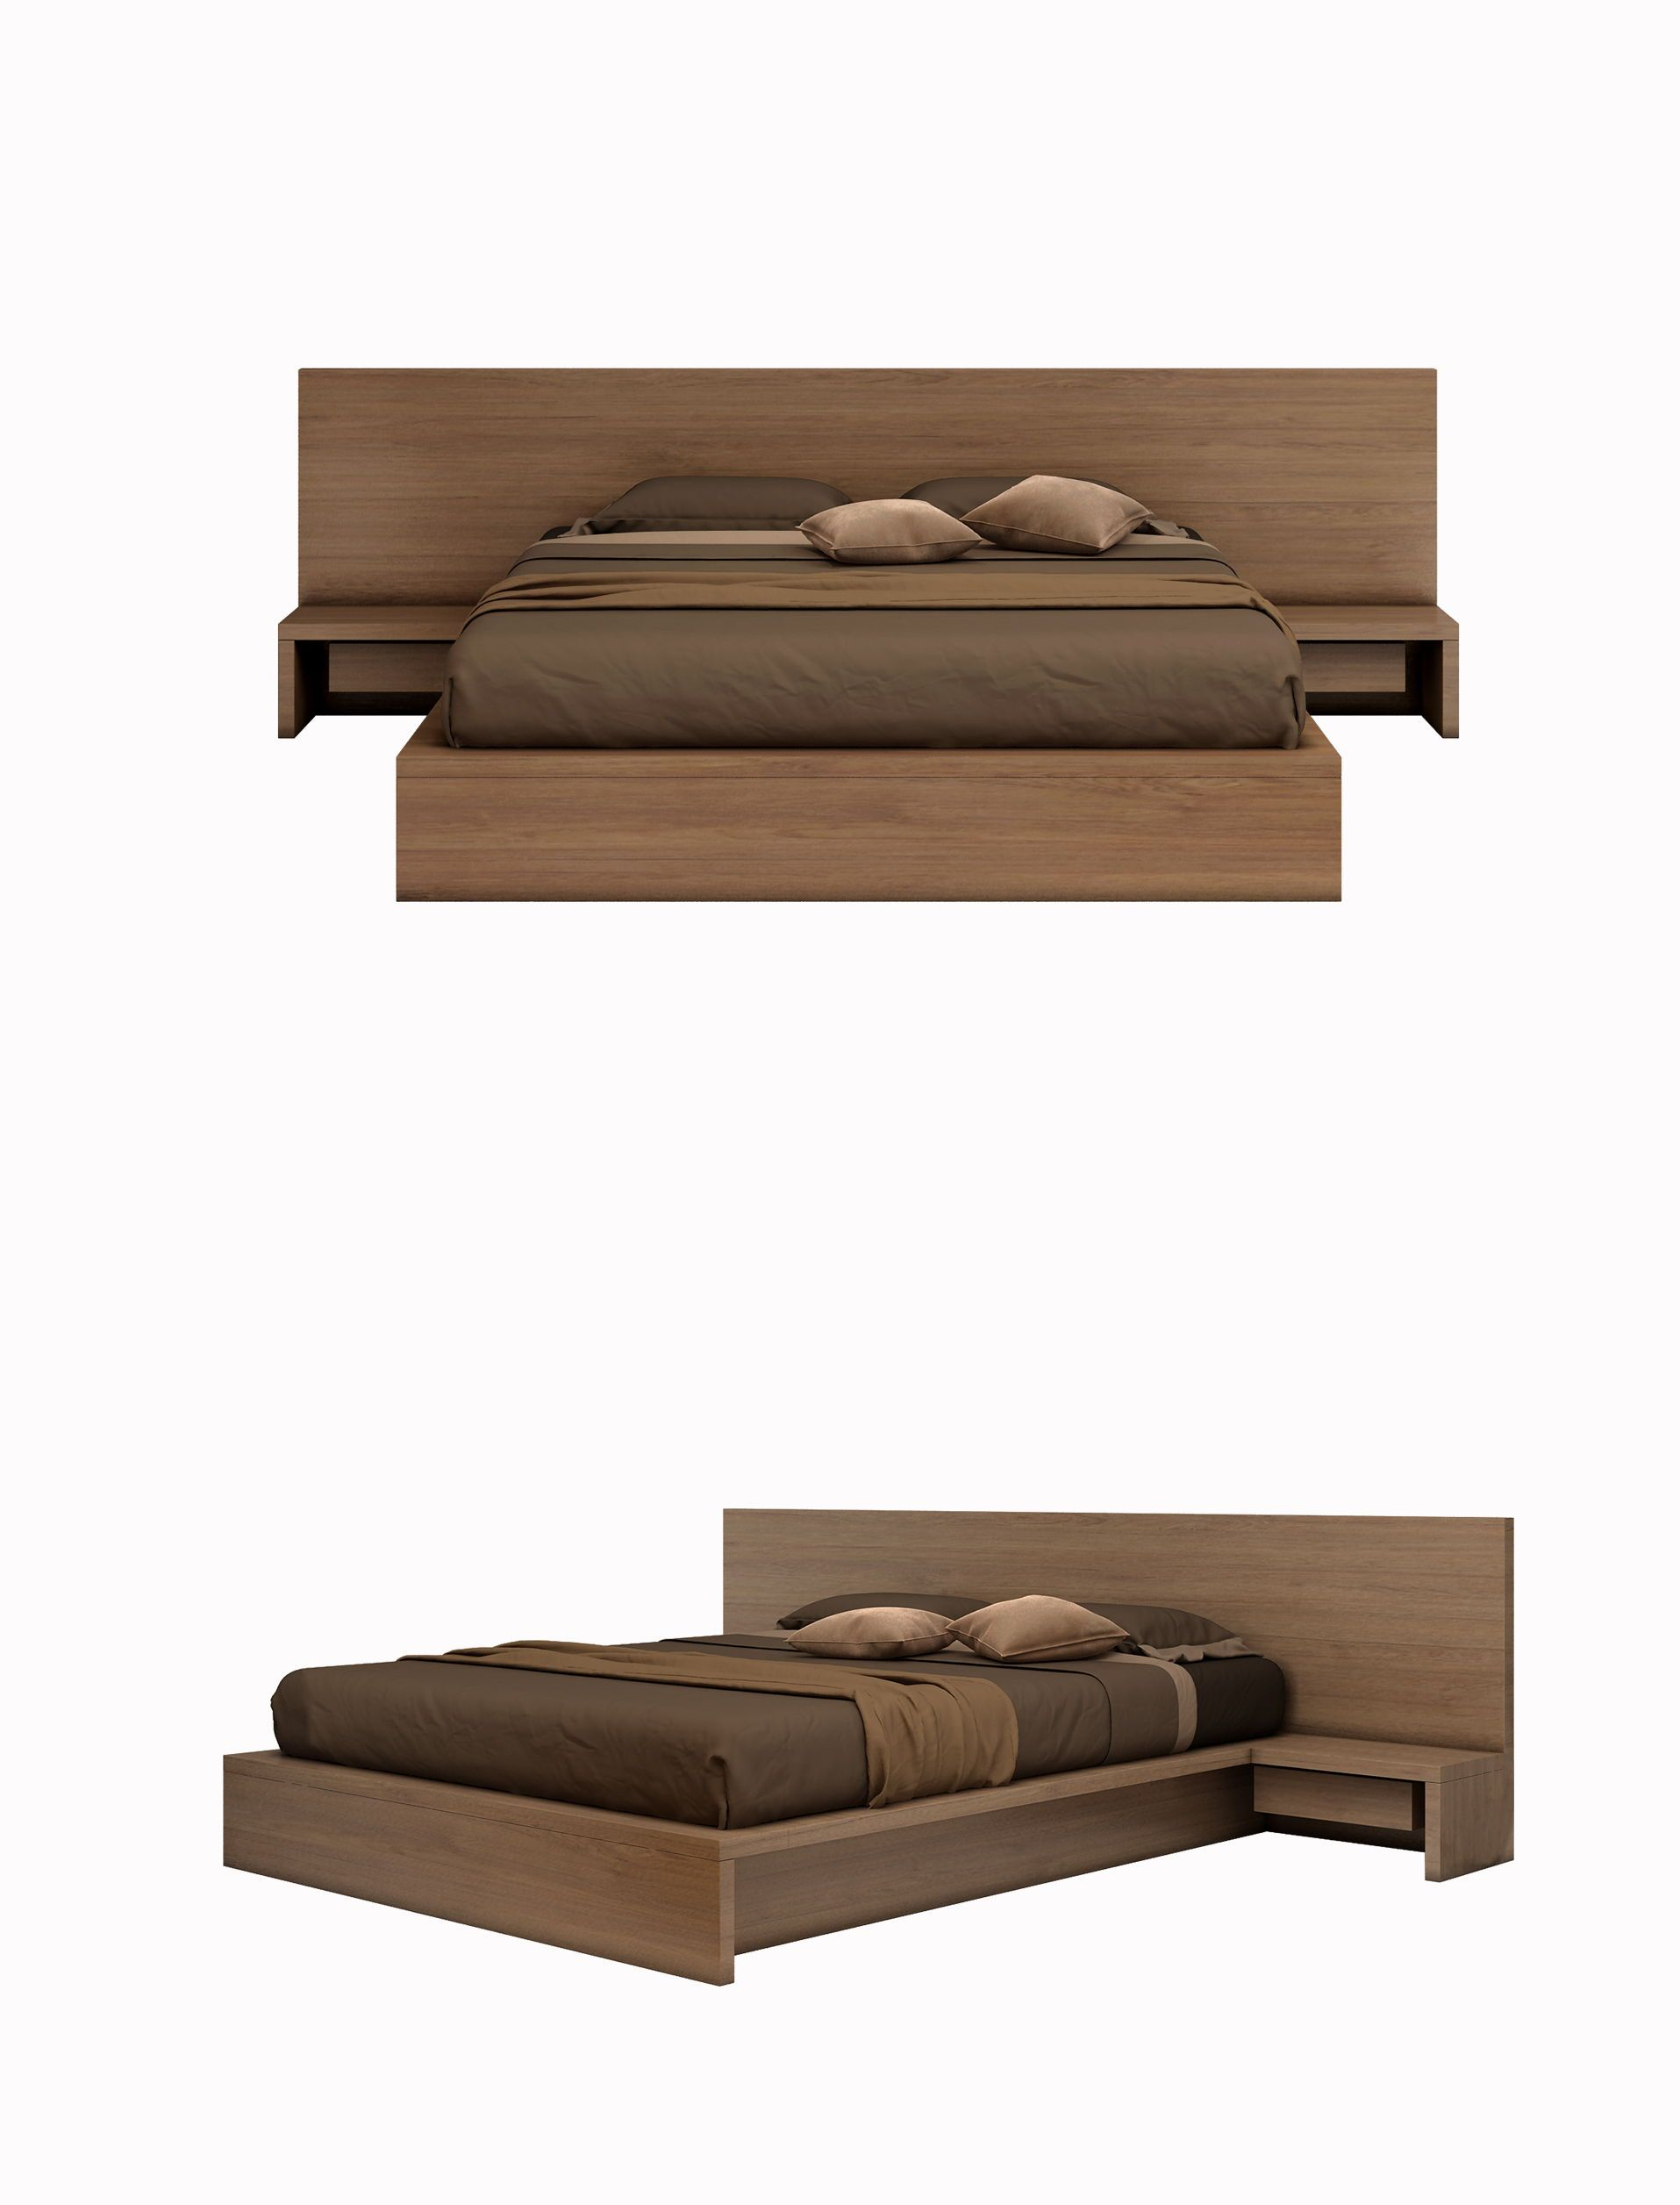 Modern Style Bed Brown Series W2850 D2245 H870 Solid Wood Frame